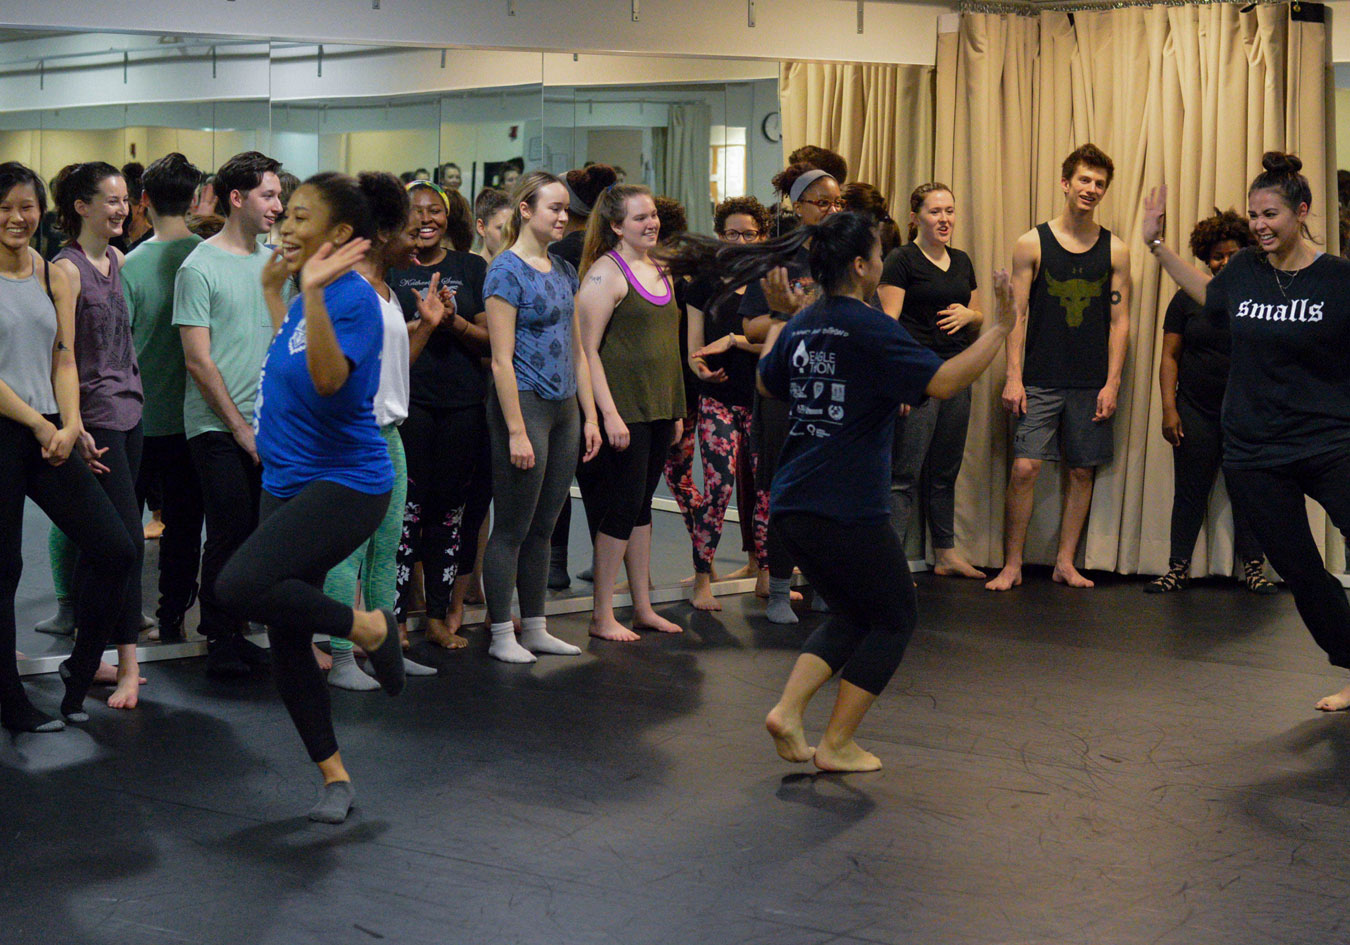 Students travel across the floor in a master class taught by Charles O. Anderson